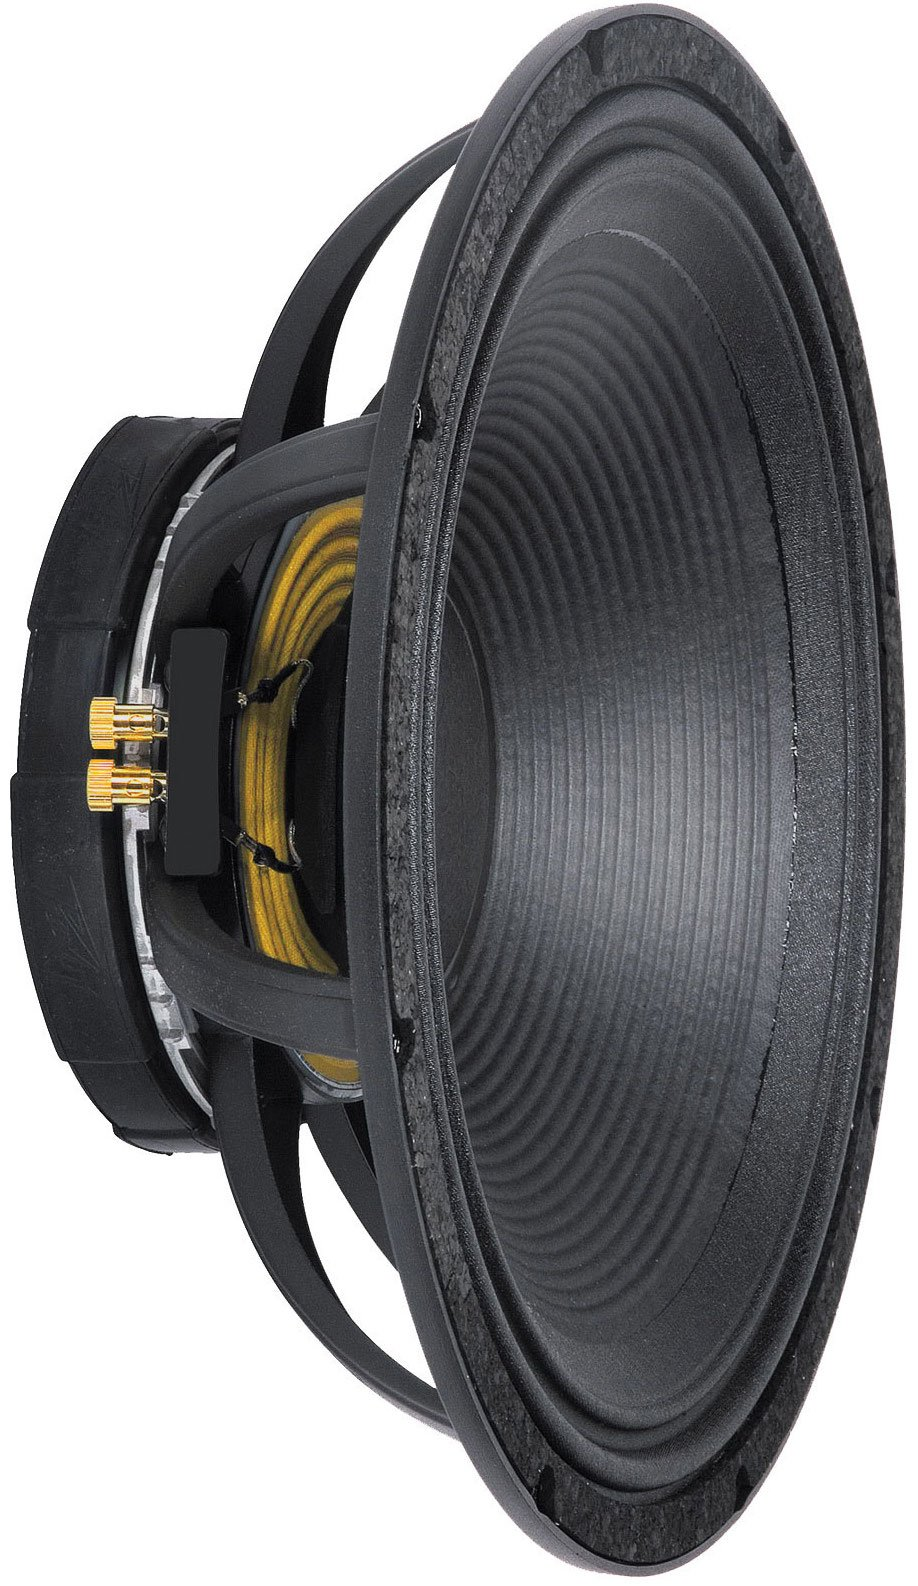 peavey-18in-low-rider-subwoofer.jpeg